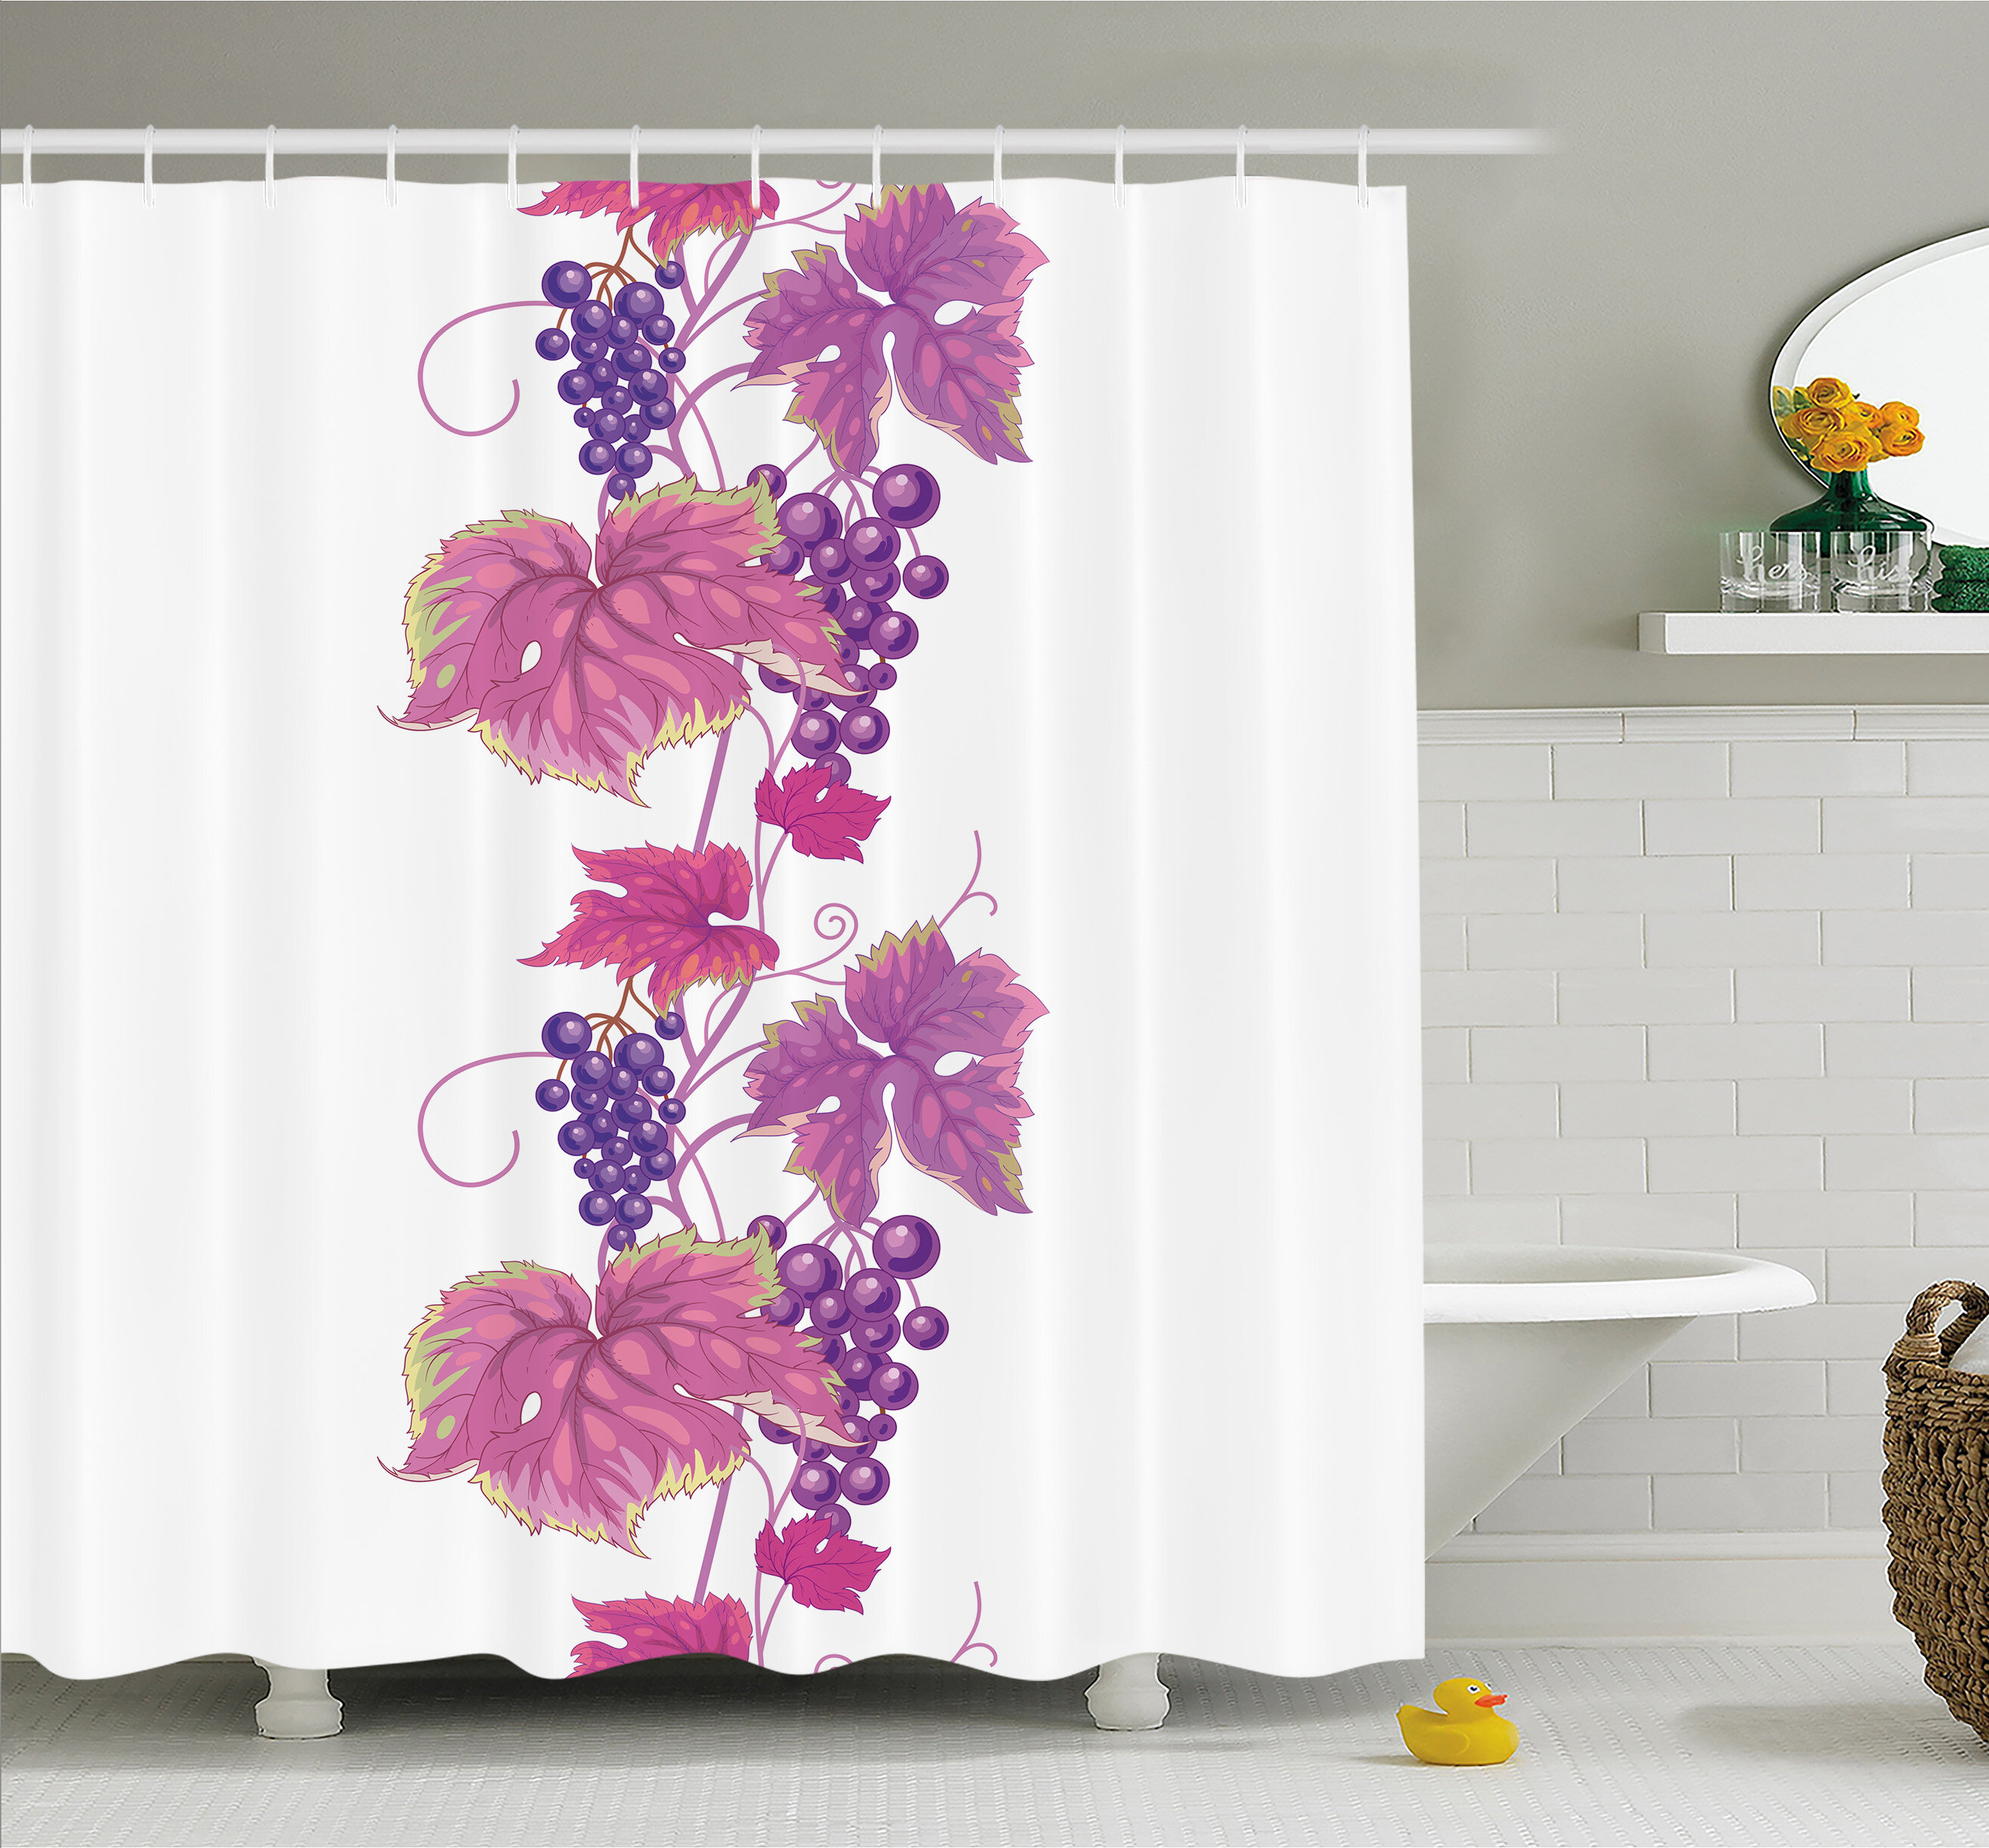 Ambesonne Grapes Vibrant Twiggy Branch With Berries Leaves Plants Trees Wild Habitat Shower Curtain Set